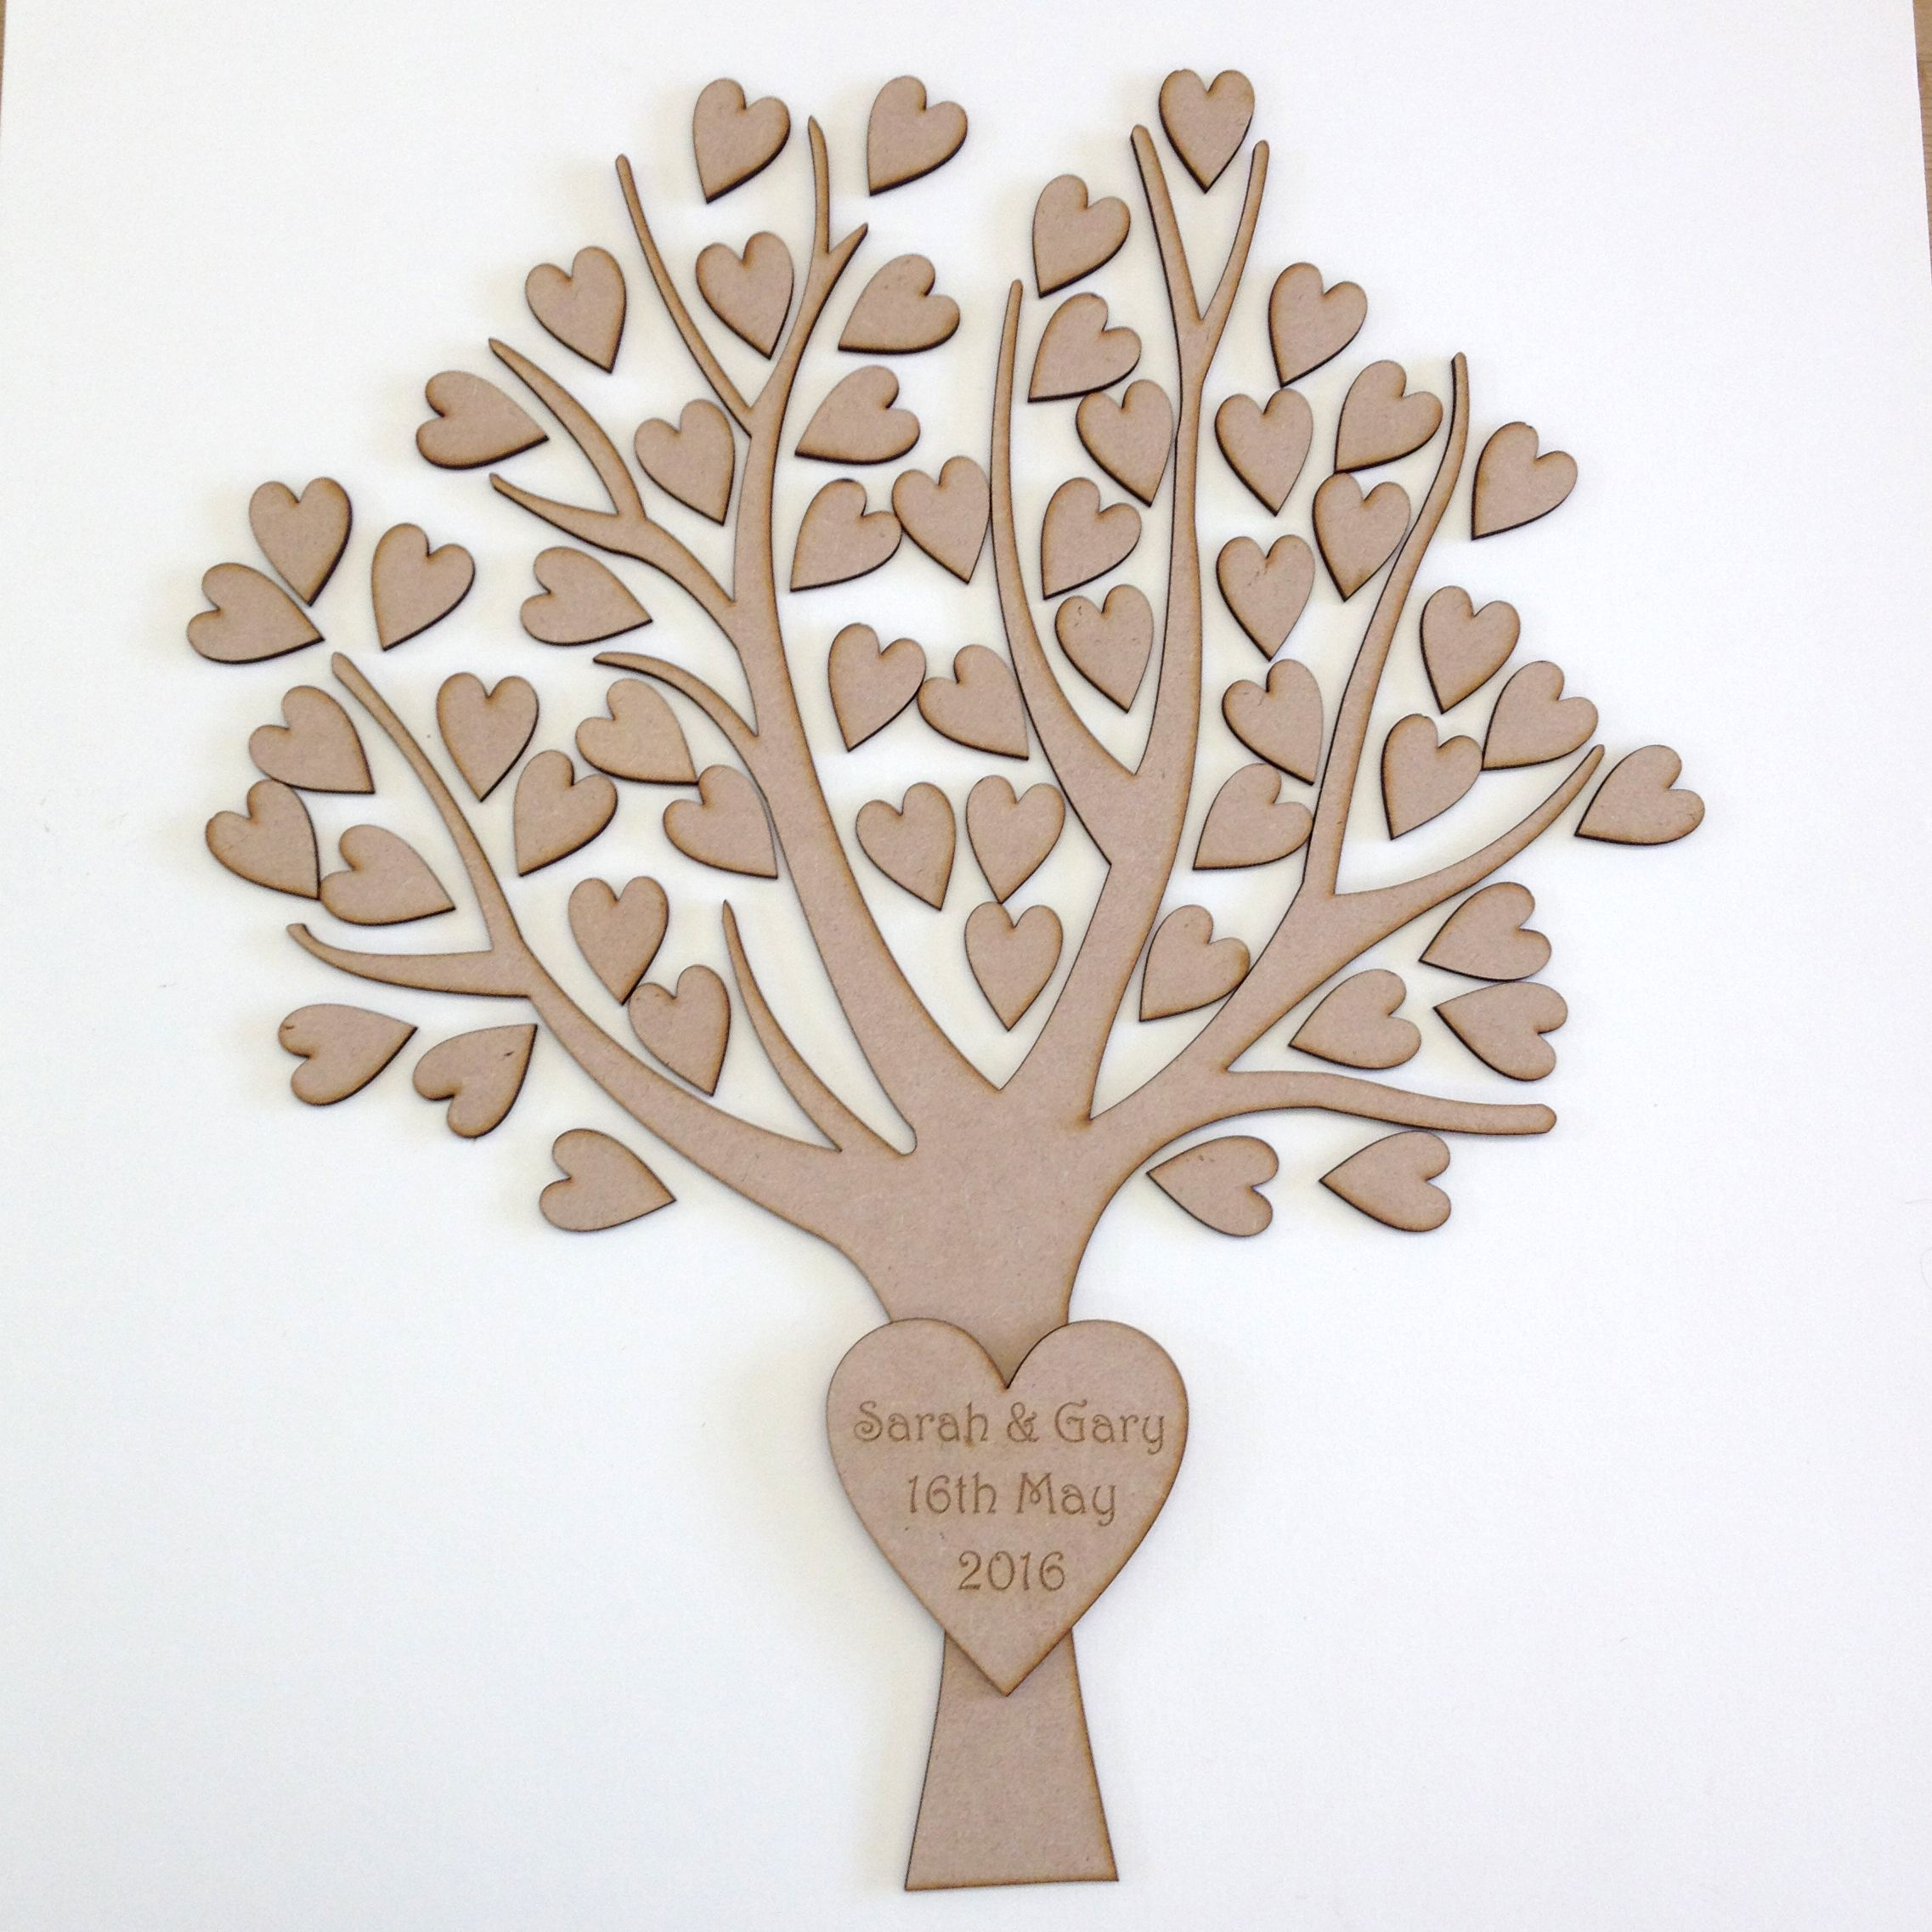 Wooden guest book, great for weddings, or special birthday or anniversaries. Made of 3mm mdf choice of number of hearts